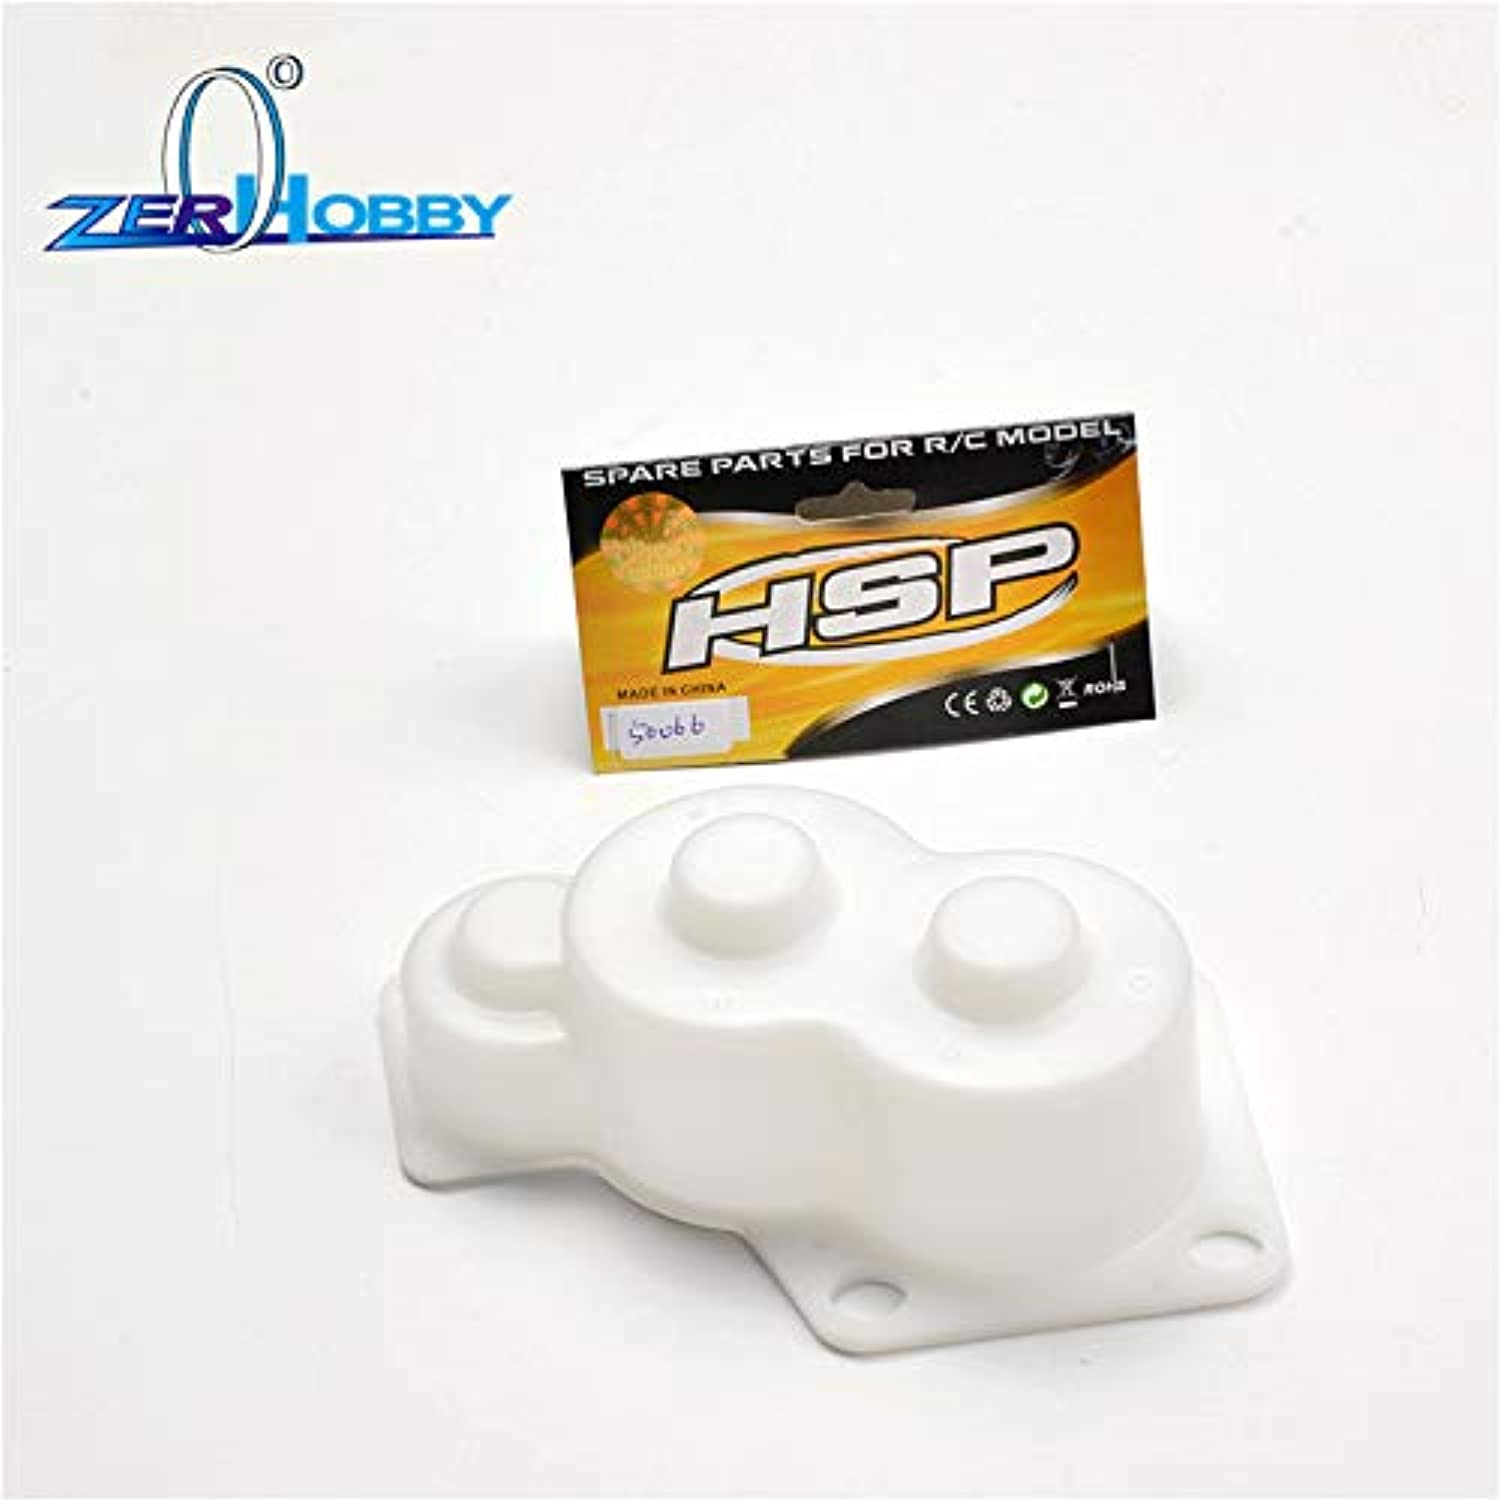 Generic HSP Racing CAR Accessories Part NO. 50066 DIFF. Gear Cover for HSP 1 5 RC Cars 94050 94052